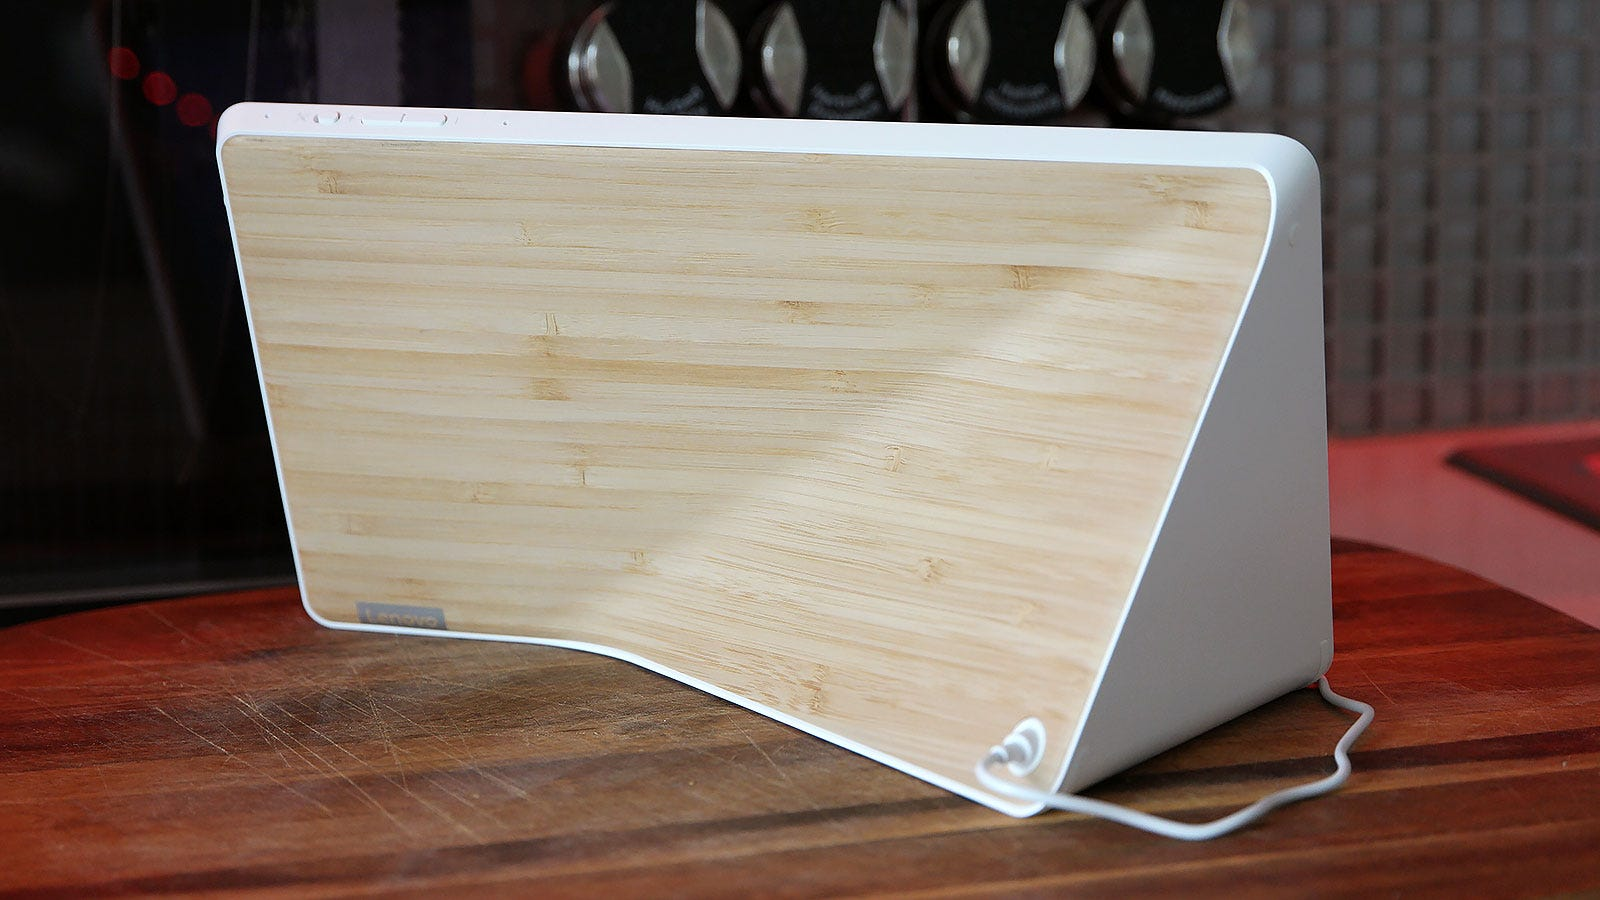 The back of the Smart Display features a sleek, minimalist look.